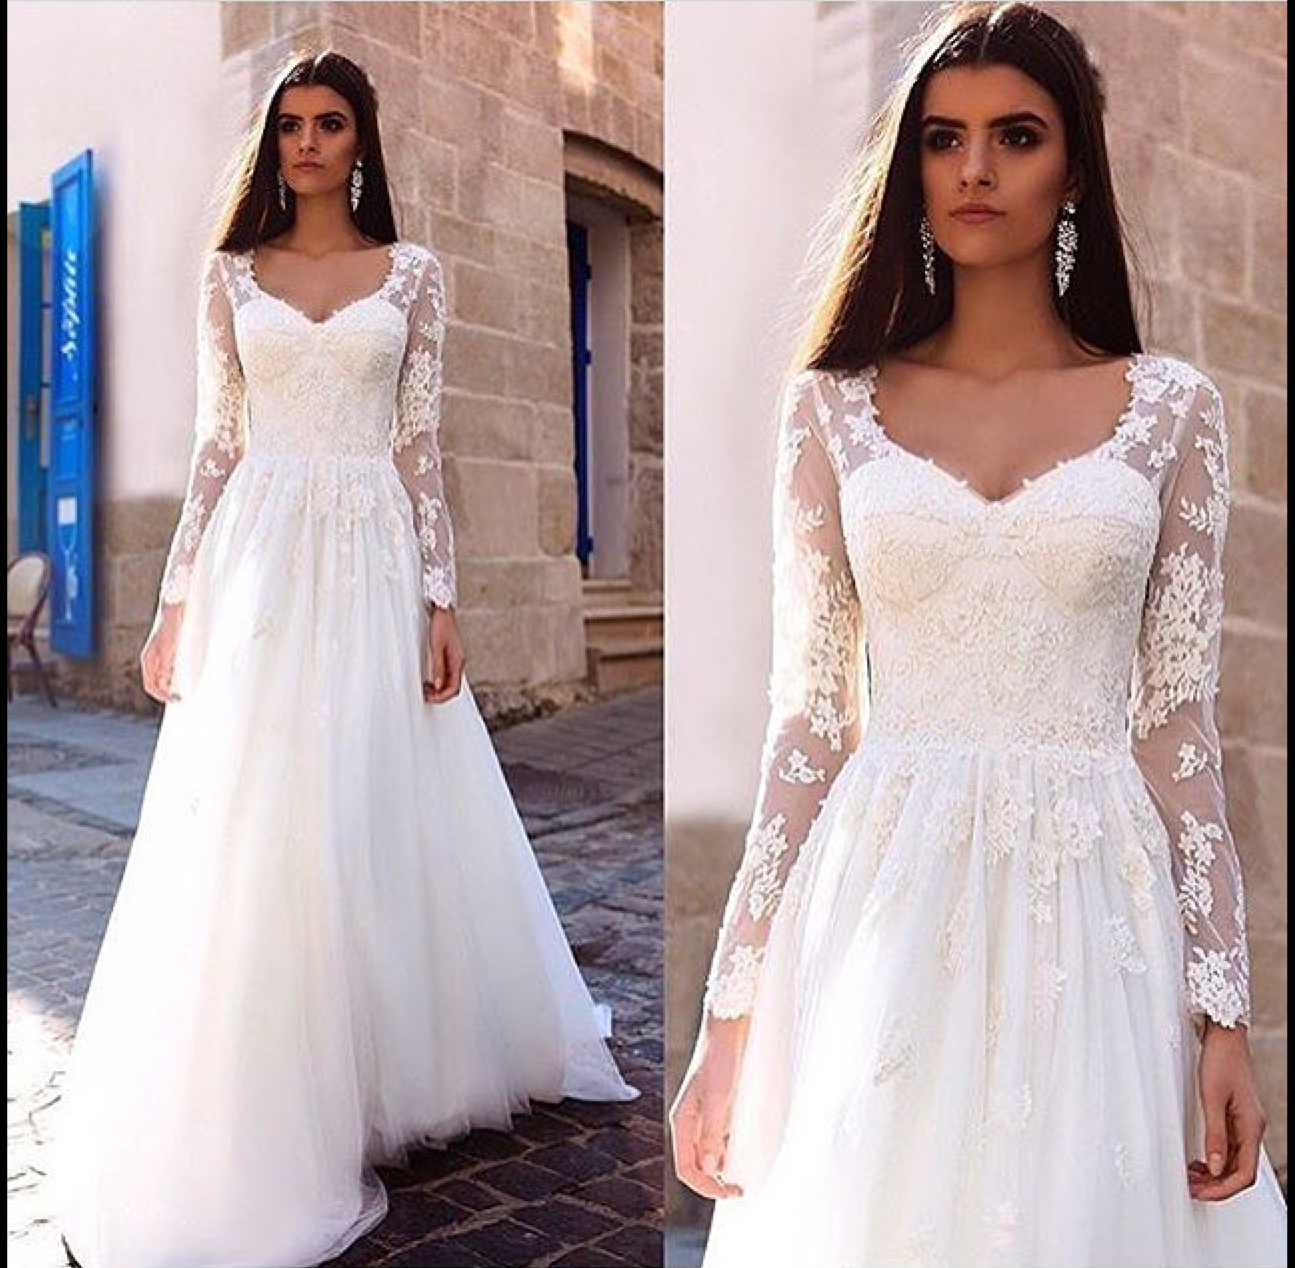 Long Sleeve Lace Wedding Dress Lace Ball Gown Vintage Bridal Gown from  Charming Dressy